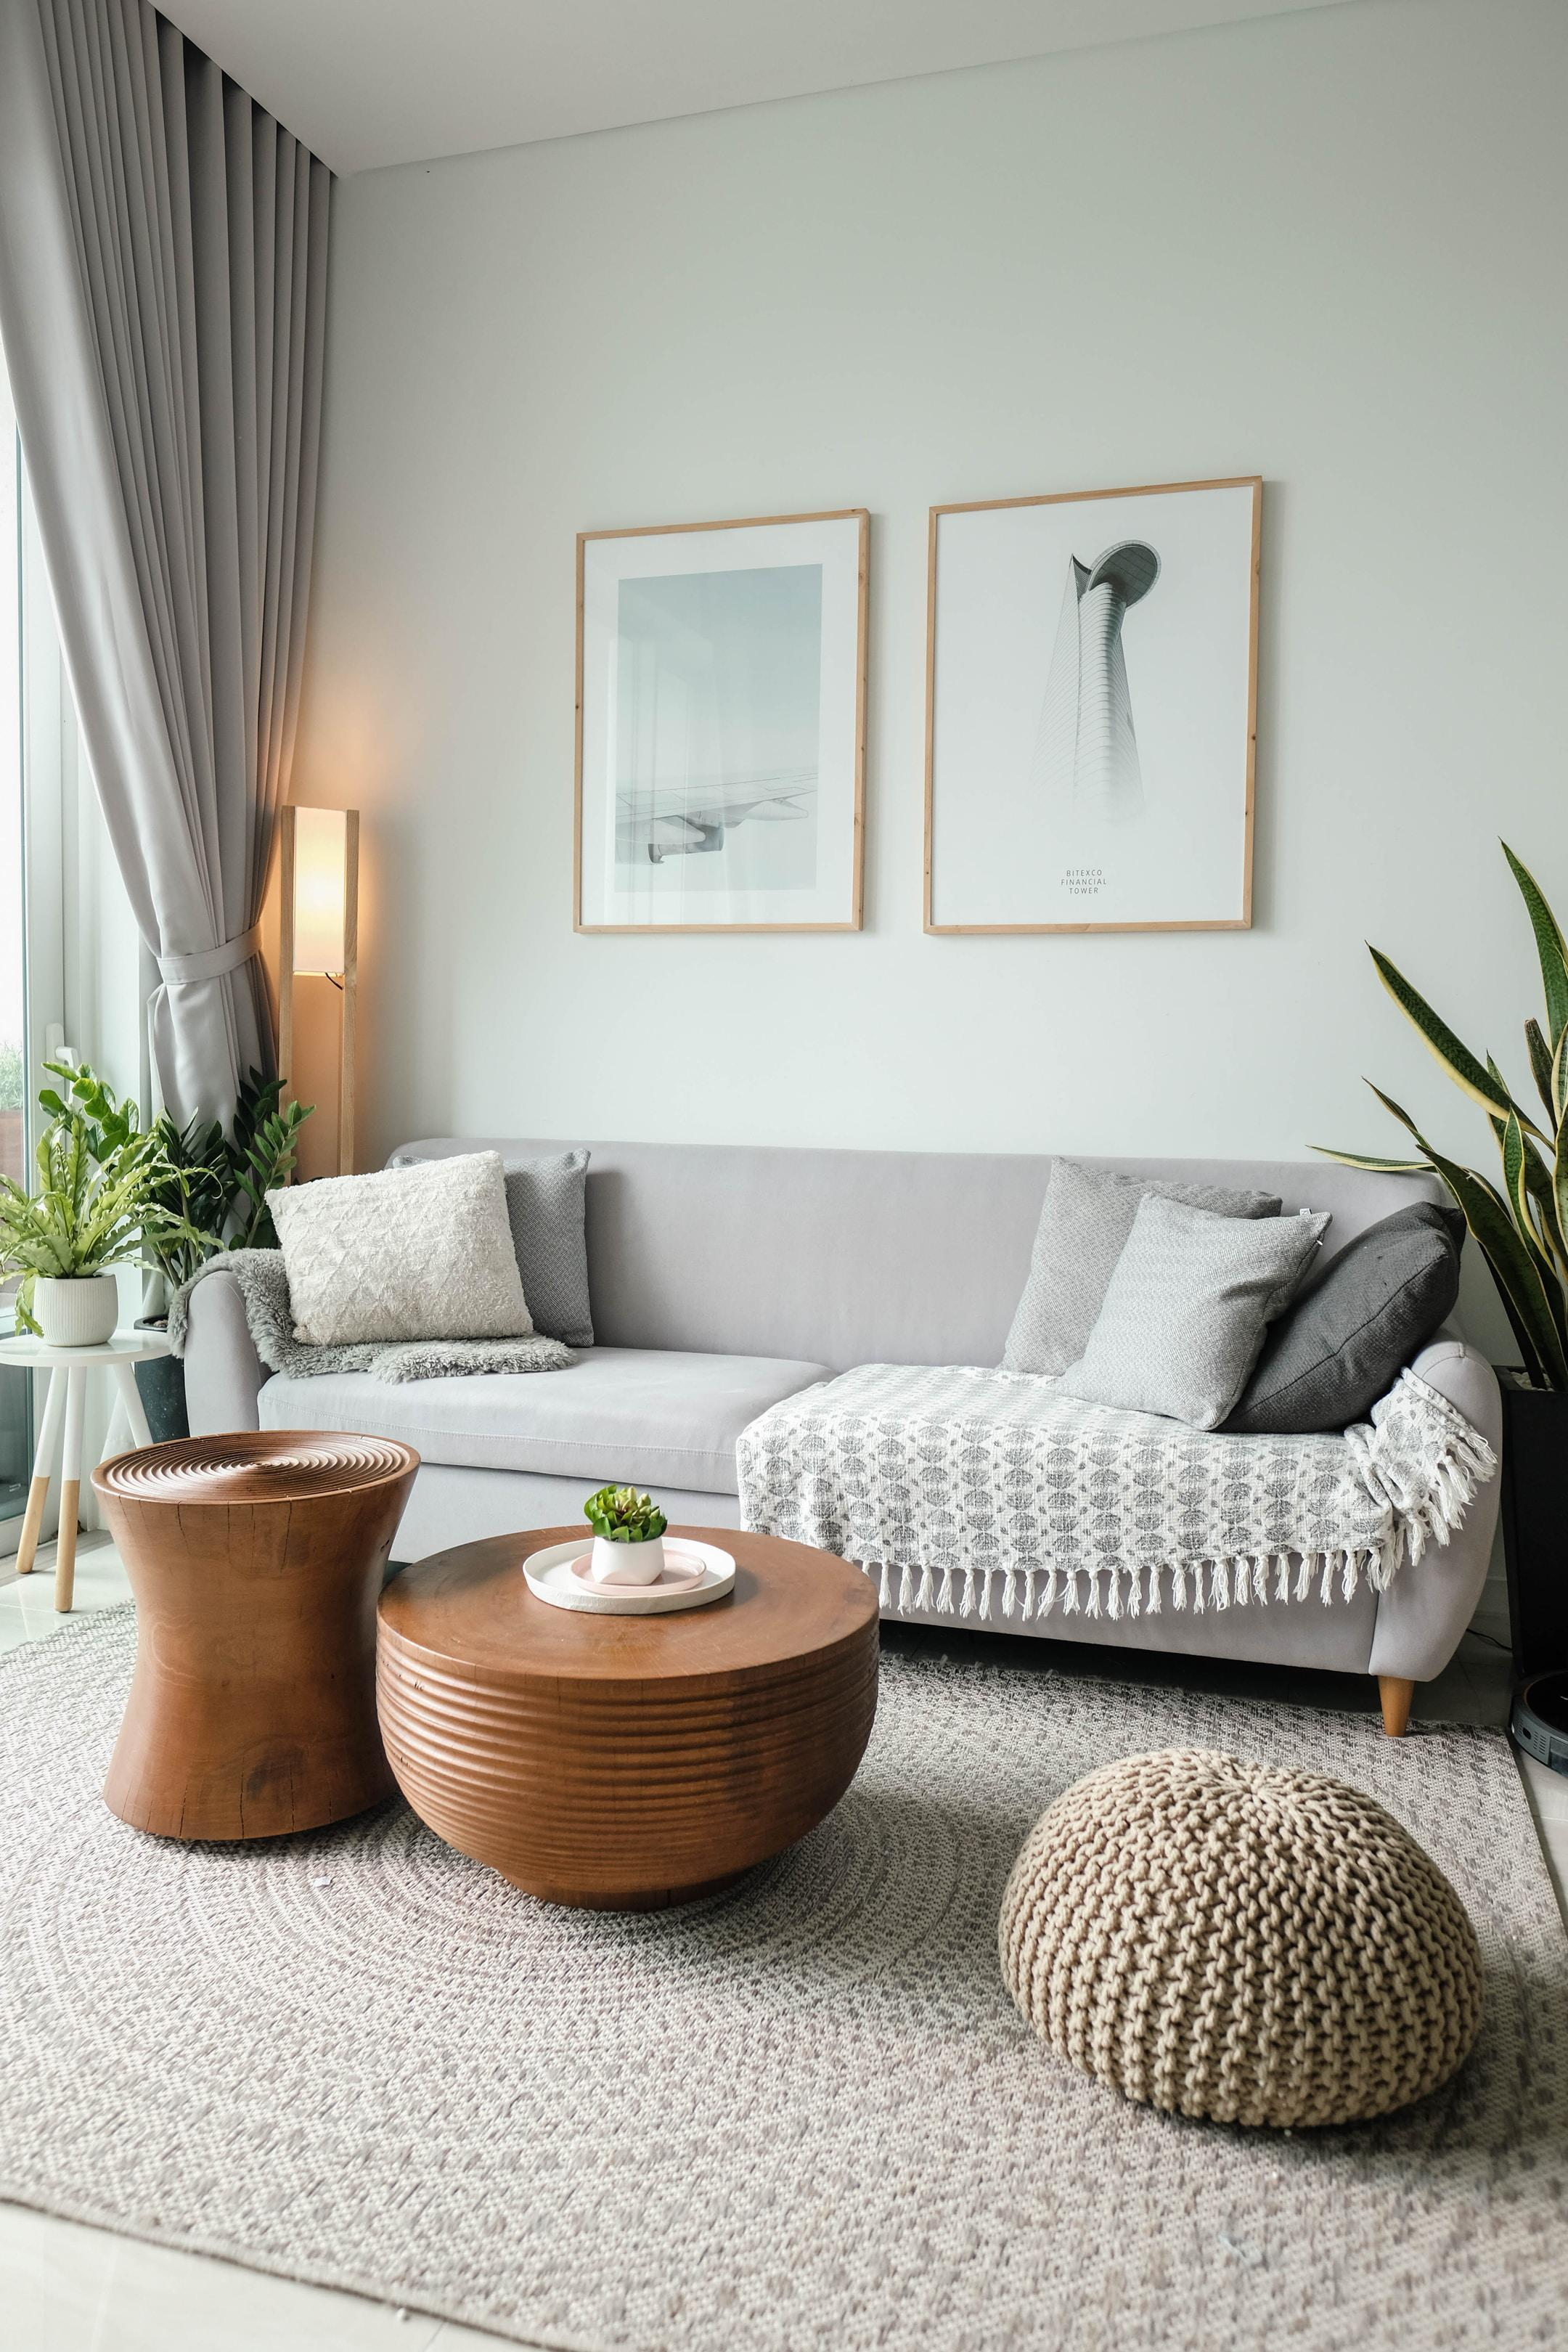 an image of a brightly lit living room